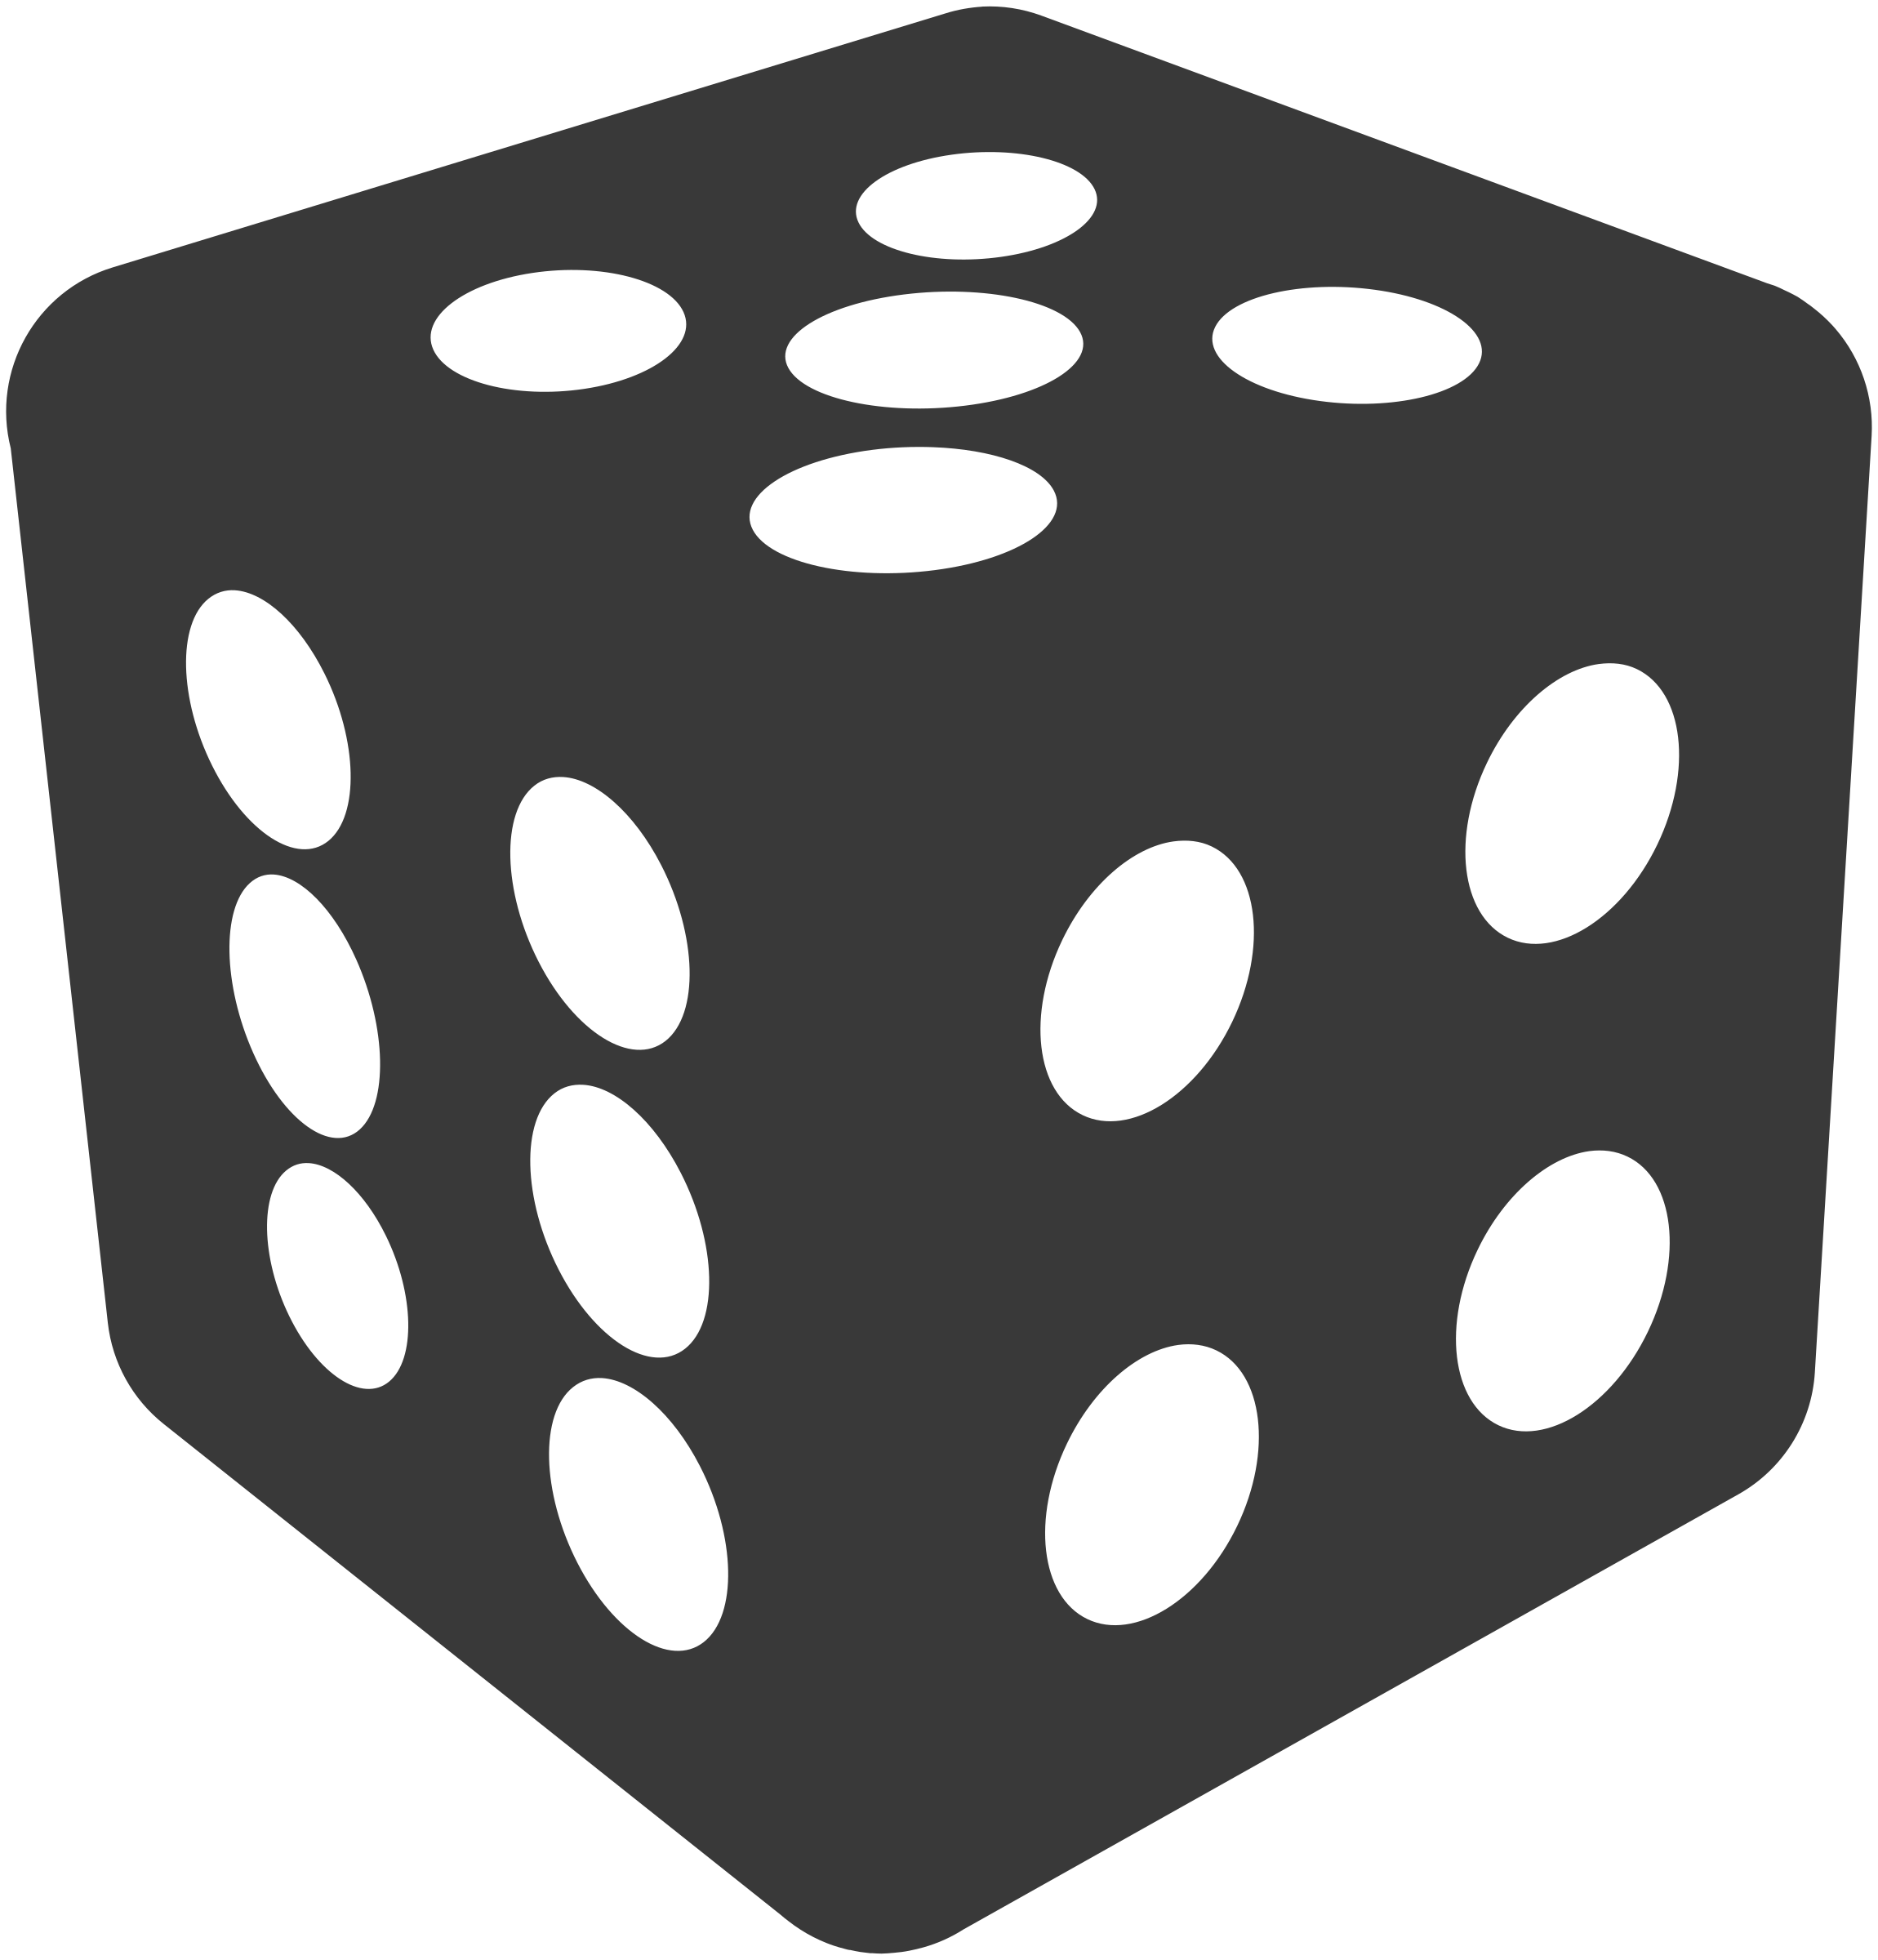 dice clipart four